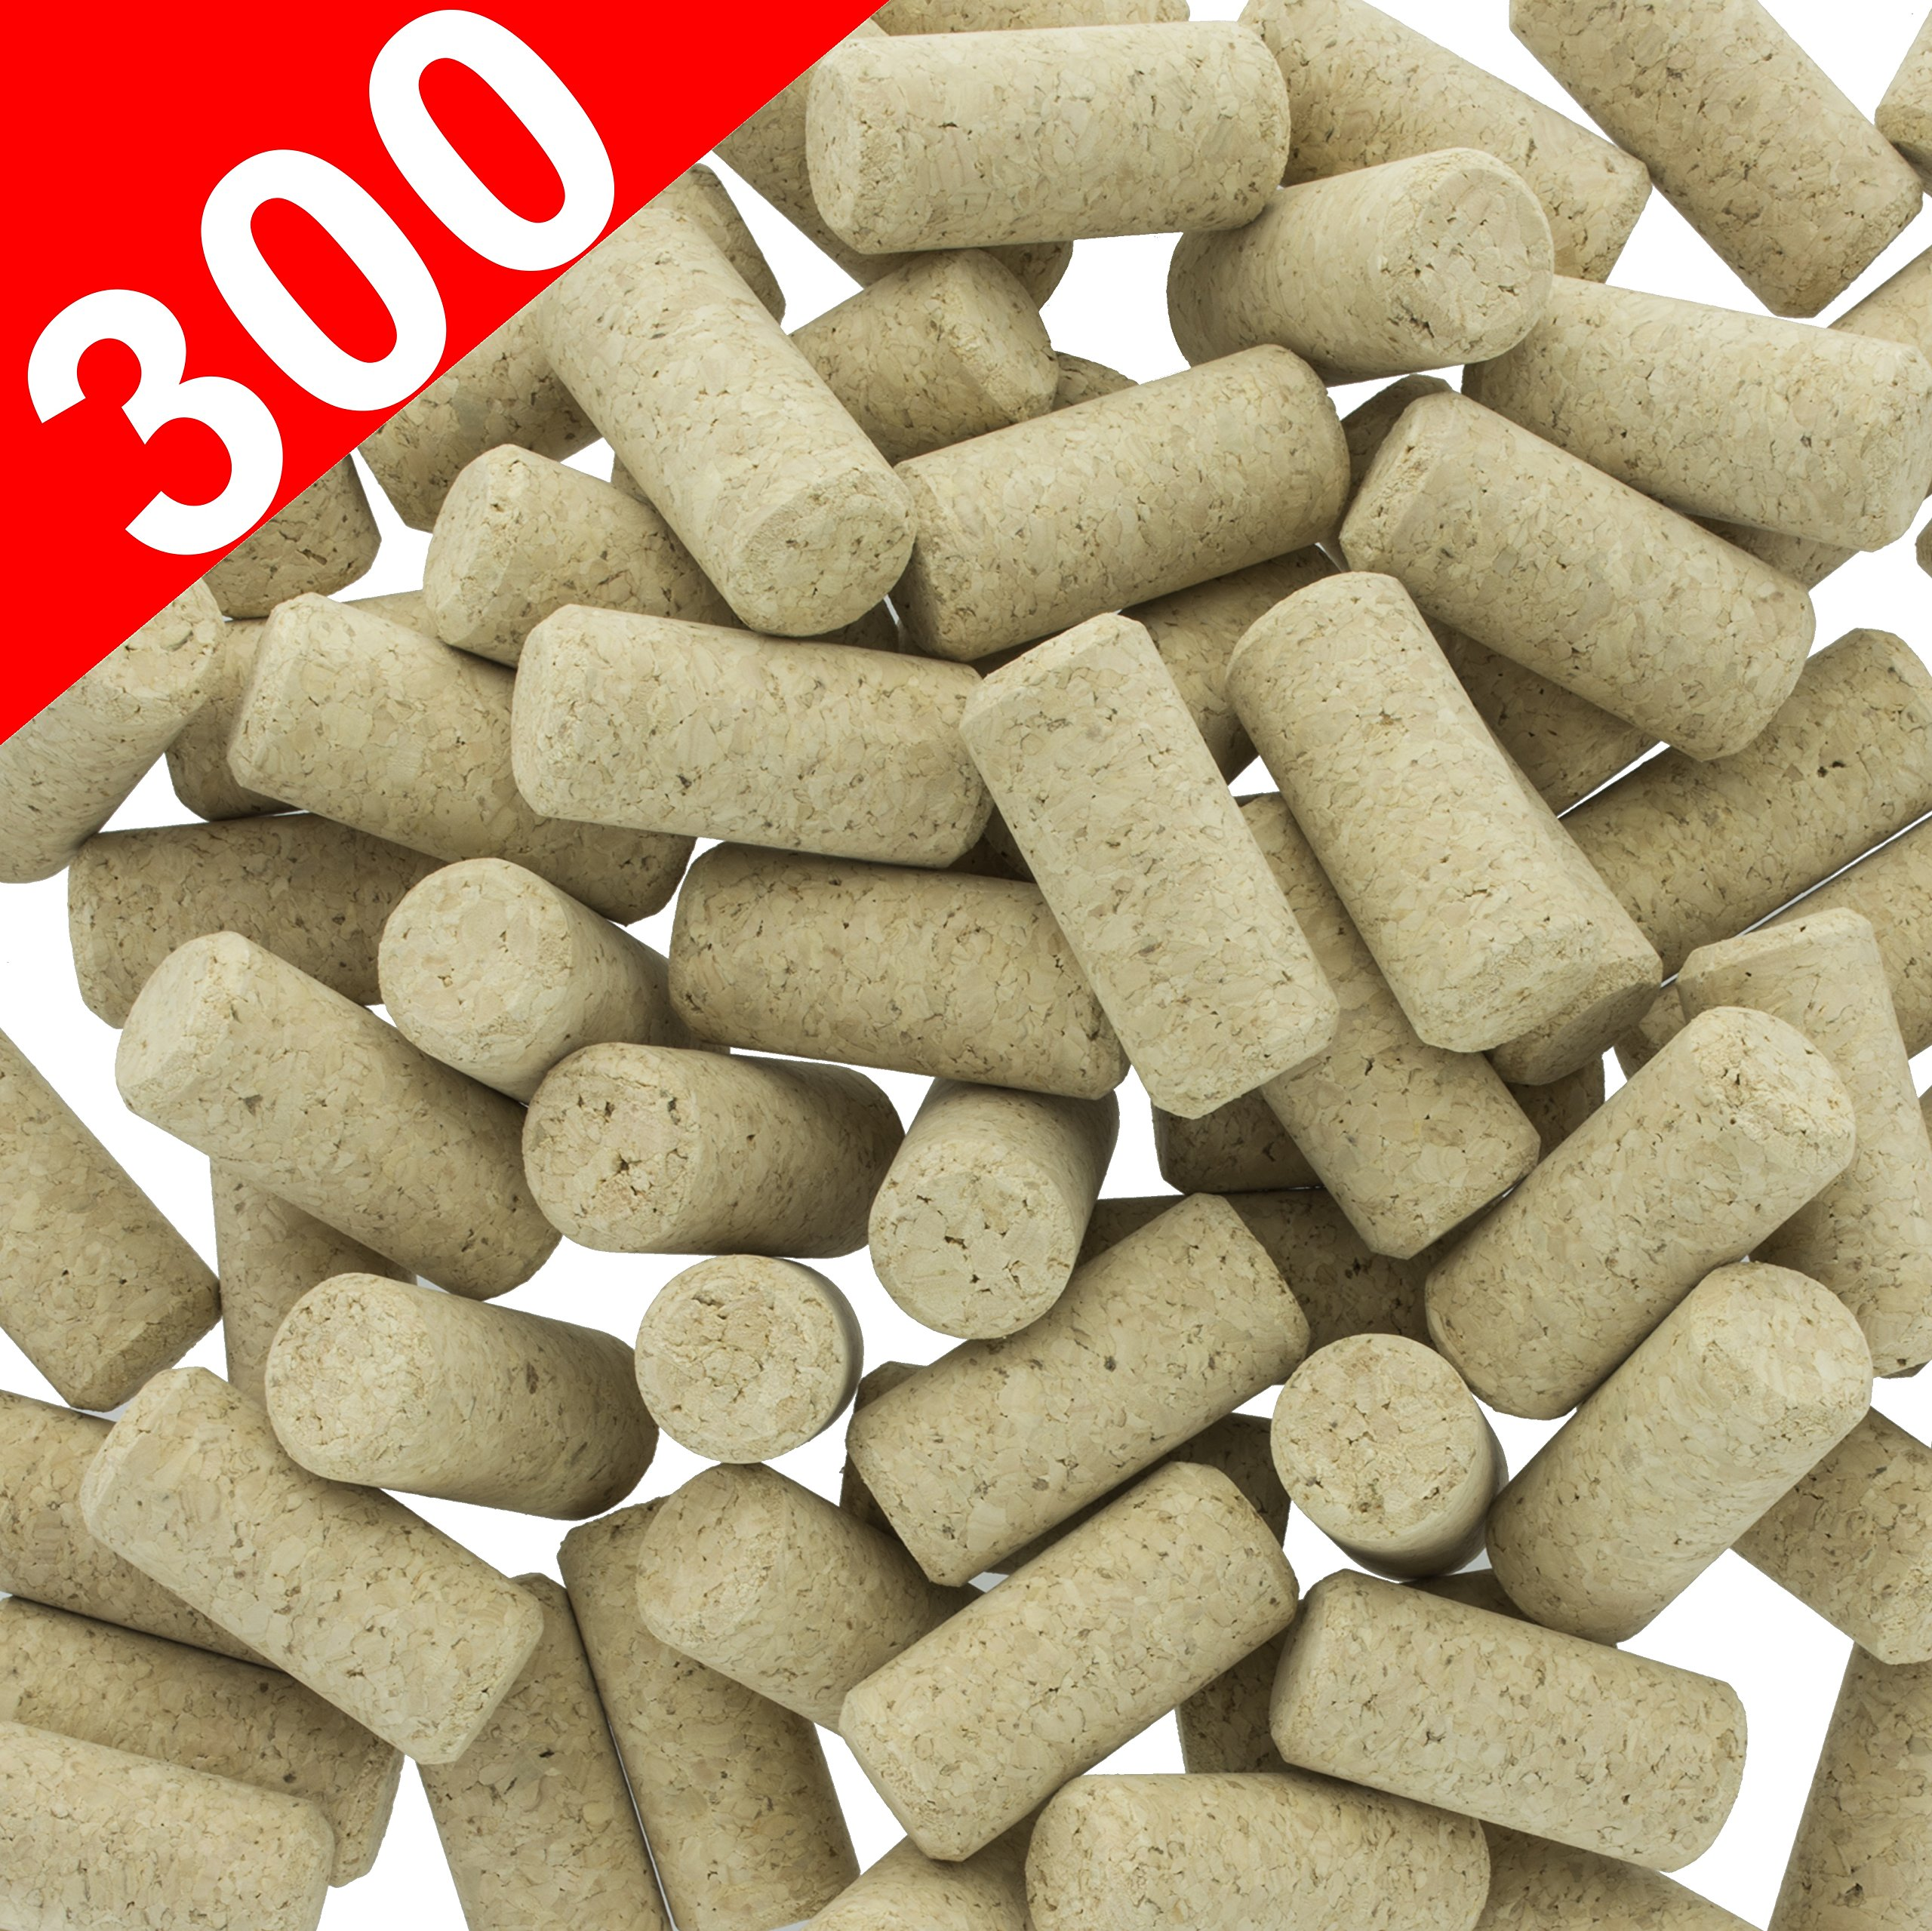 Wine Cork 300 New Wine Corks - #9 Agglomerated Natural Cork for Corking Home Wine Making Bottles With Corker or Bulk Craft Corks & Art Supply Winecorks